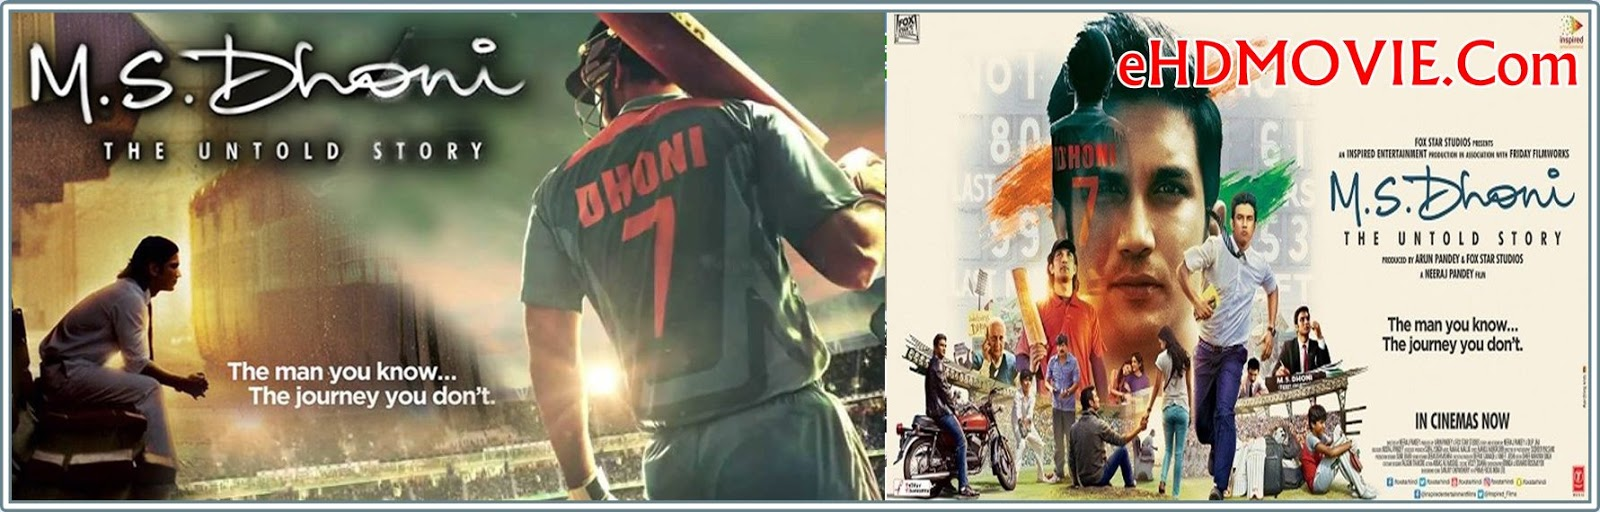 M.S. Dhoni: The Untold Story 2016 Full Movie Hindi 720p - 480p ORG BRRip 500MB - 1.6GB ESubs Free Download